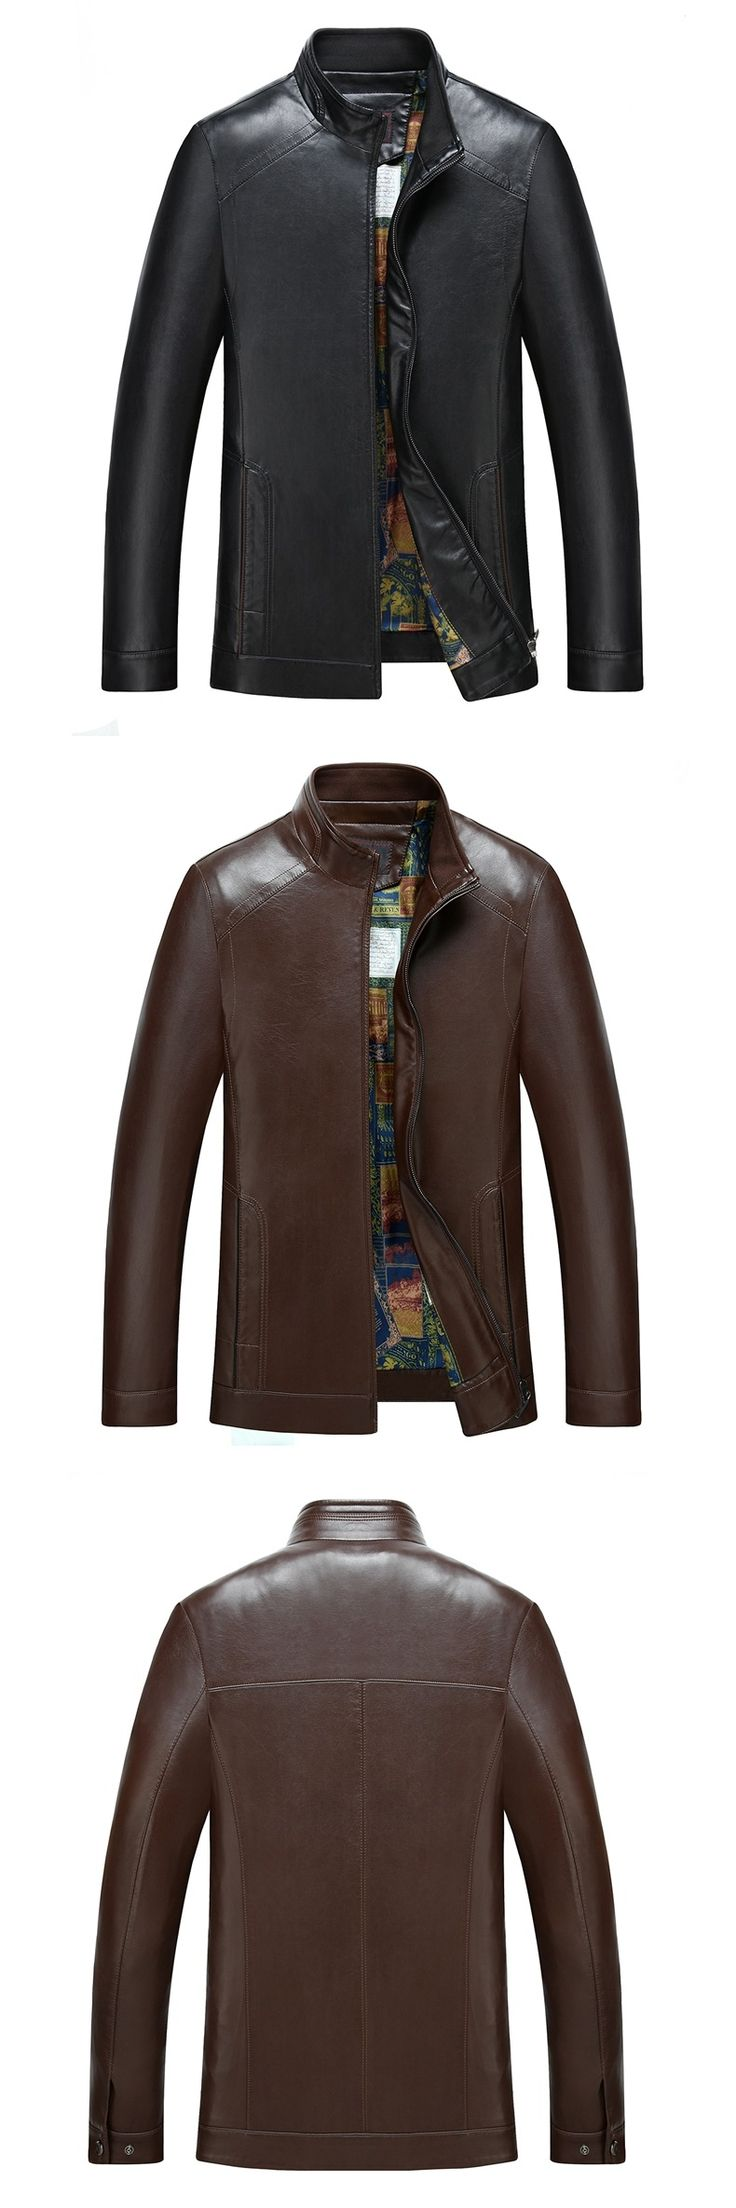 Punk Leather Jacket Men's Fashion Trends Male Leather Jacket  Leisure To Increase The Size Of The Business Mens Winter Leather